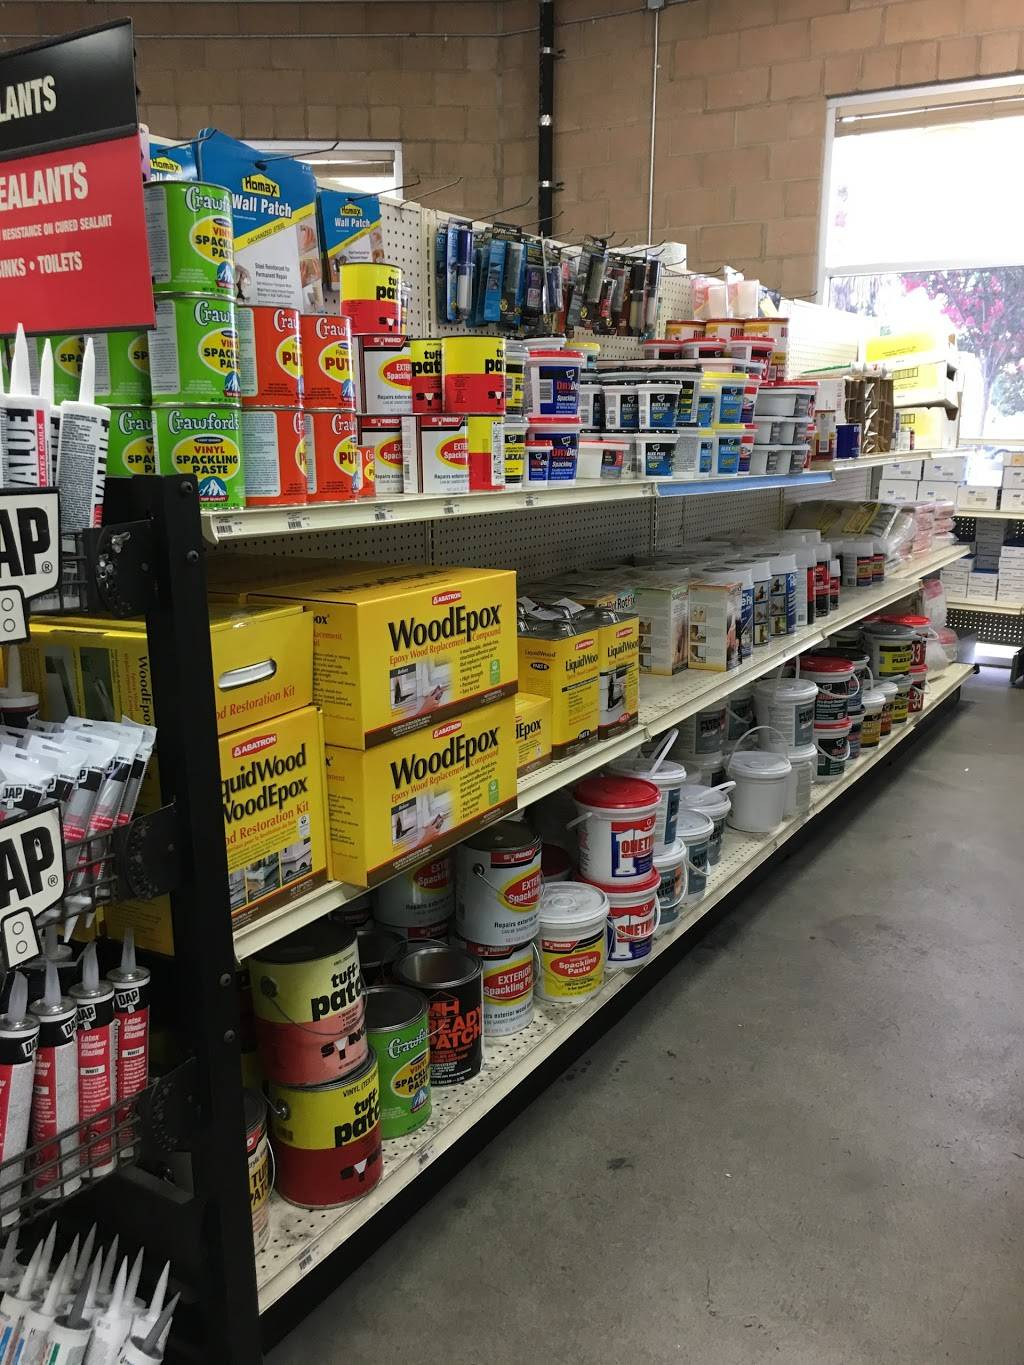 Shilpark Paint - Garden Grove - home goods store  | Photo 3 of 9 | Address: 9001 Garden Grove Blvd, Garden Grove, CA 92844, USA | Phone: (714) 534-8889